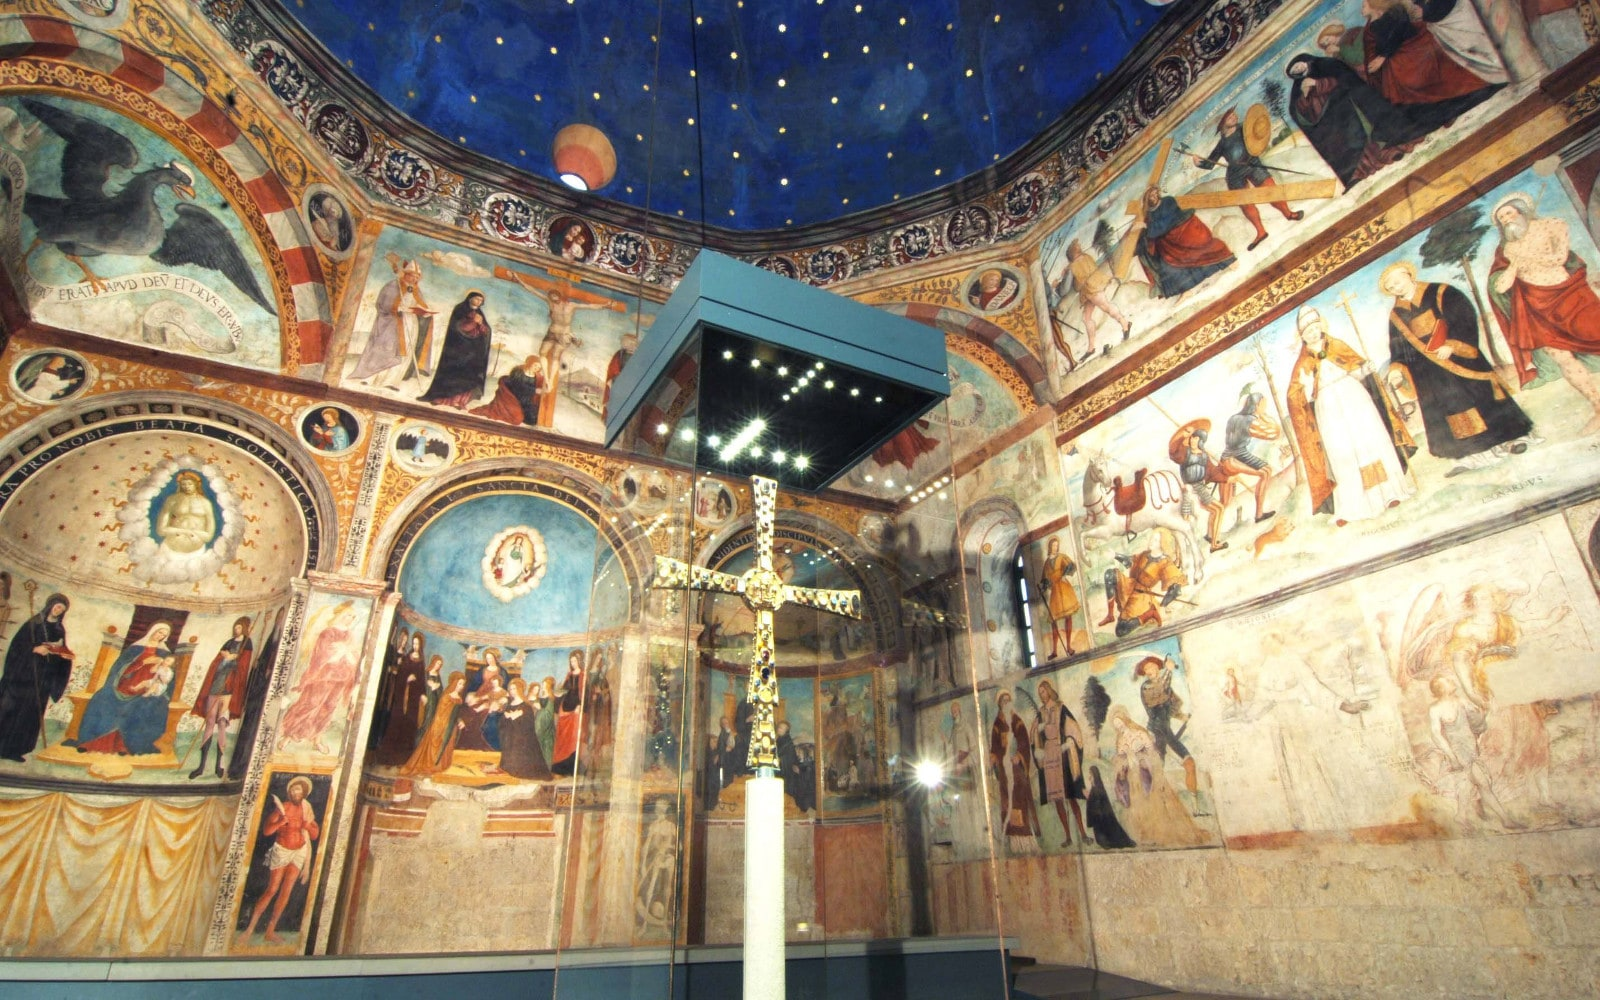 GUIDED TOUR OF THE SANTA GIULIA MUSEUM